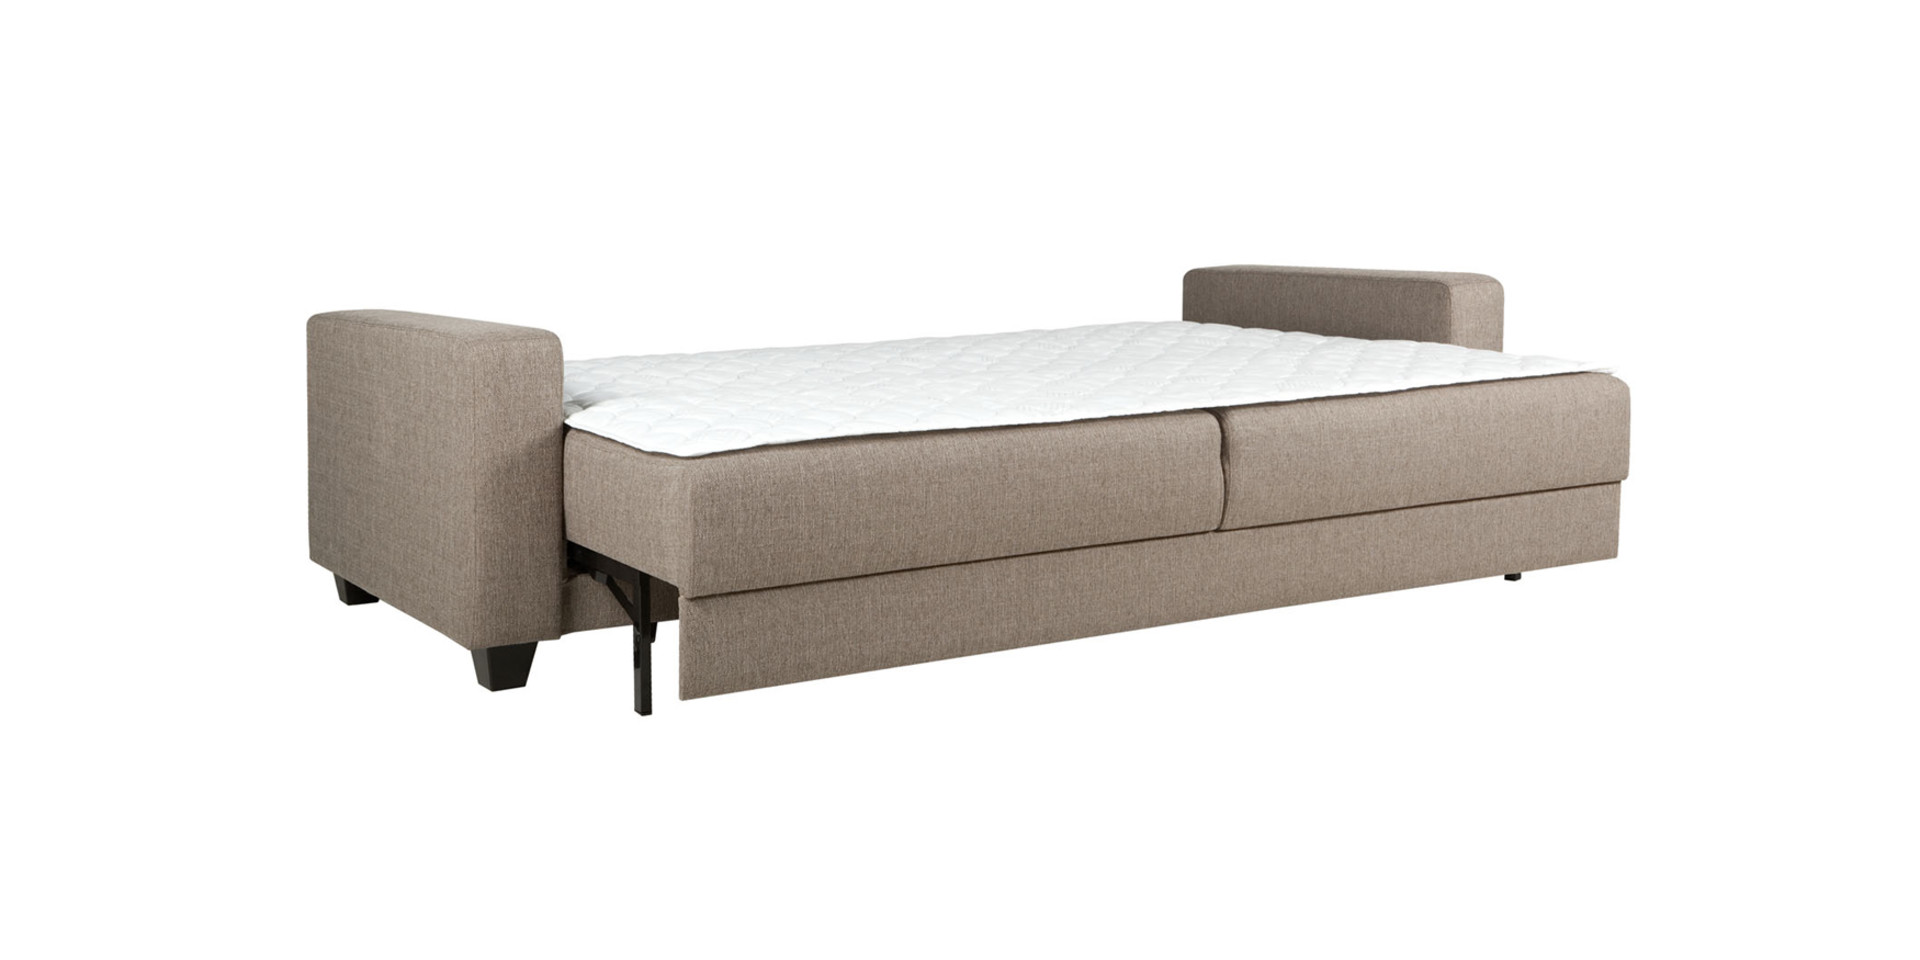 sits-bari-canape-convertible-sofa_bed_cedros3_light_brown_8